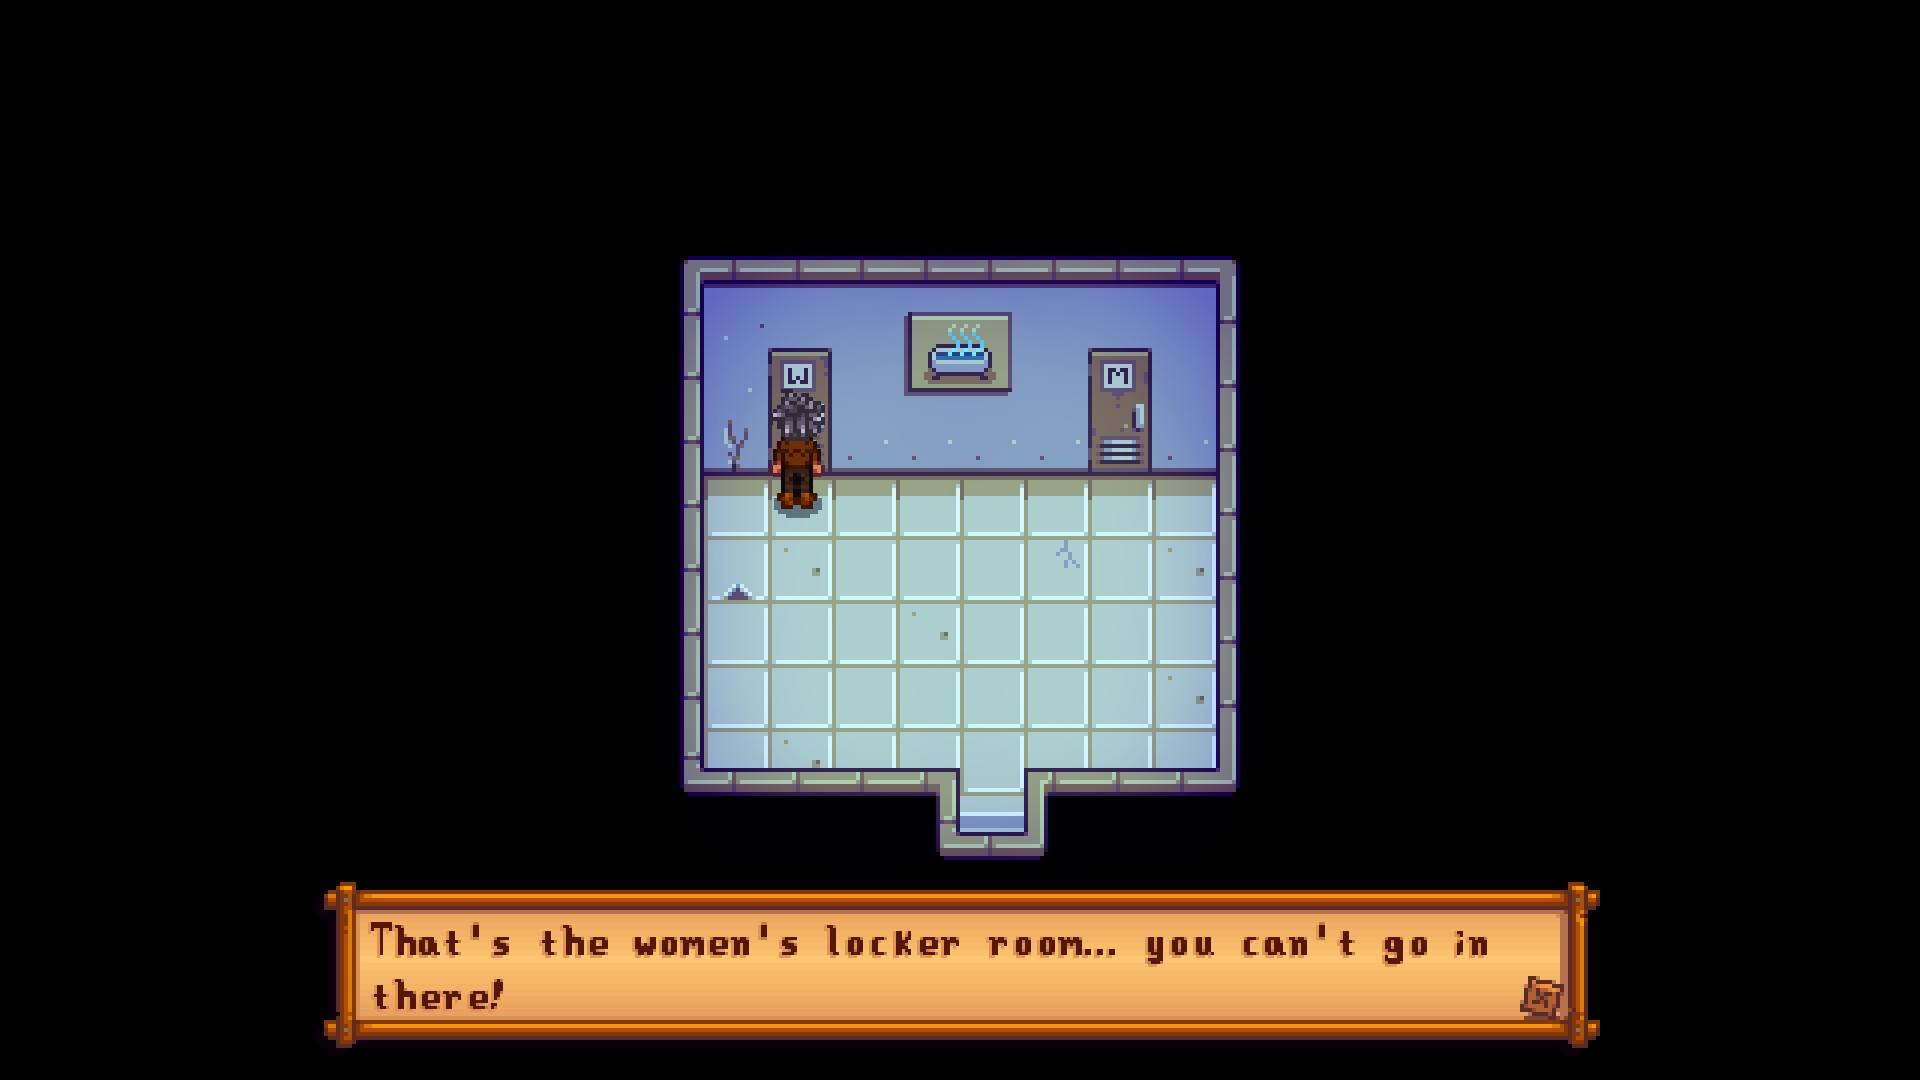 A gender ambiguous person standing in front of a door marked with a W. Another door marked with an M. Text reads 'That's the women's locker room. You can't go in there.'.